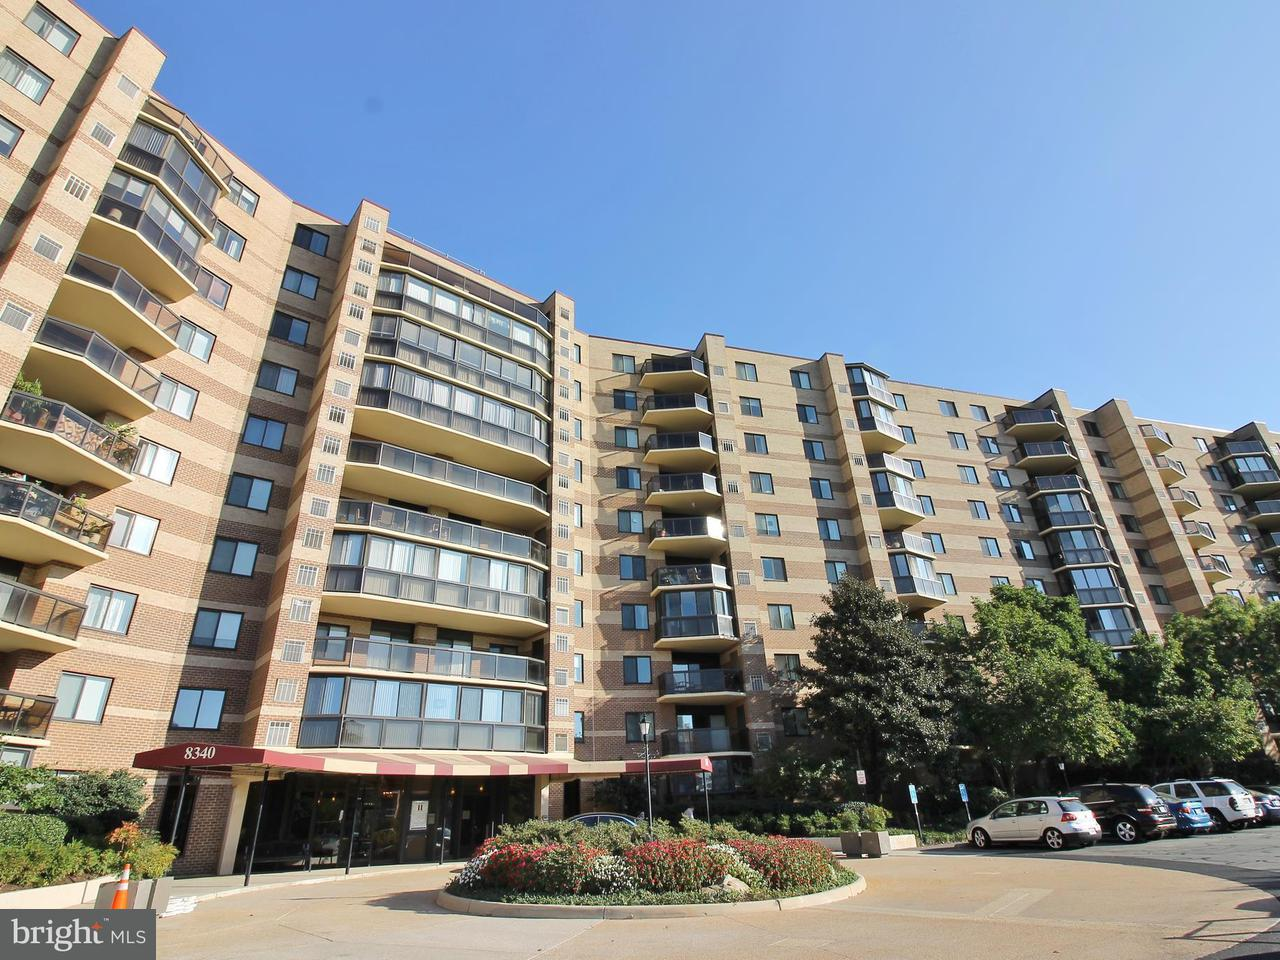 Condominium for Sale at 8340 GREENSBORO DR #507 8340 GREENSBORO DR #507 McLean, Virginia 22102 United States